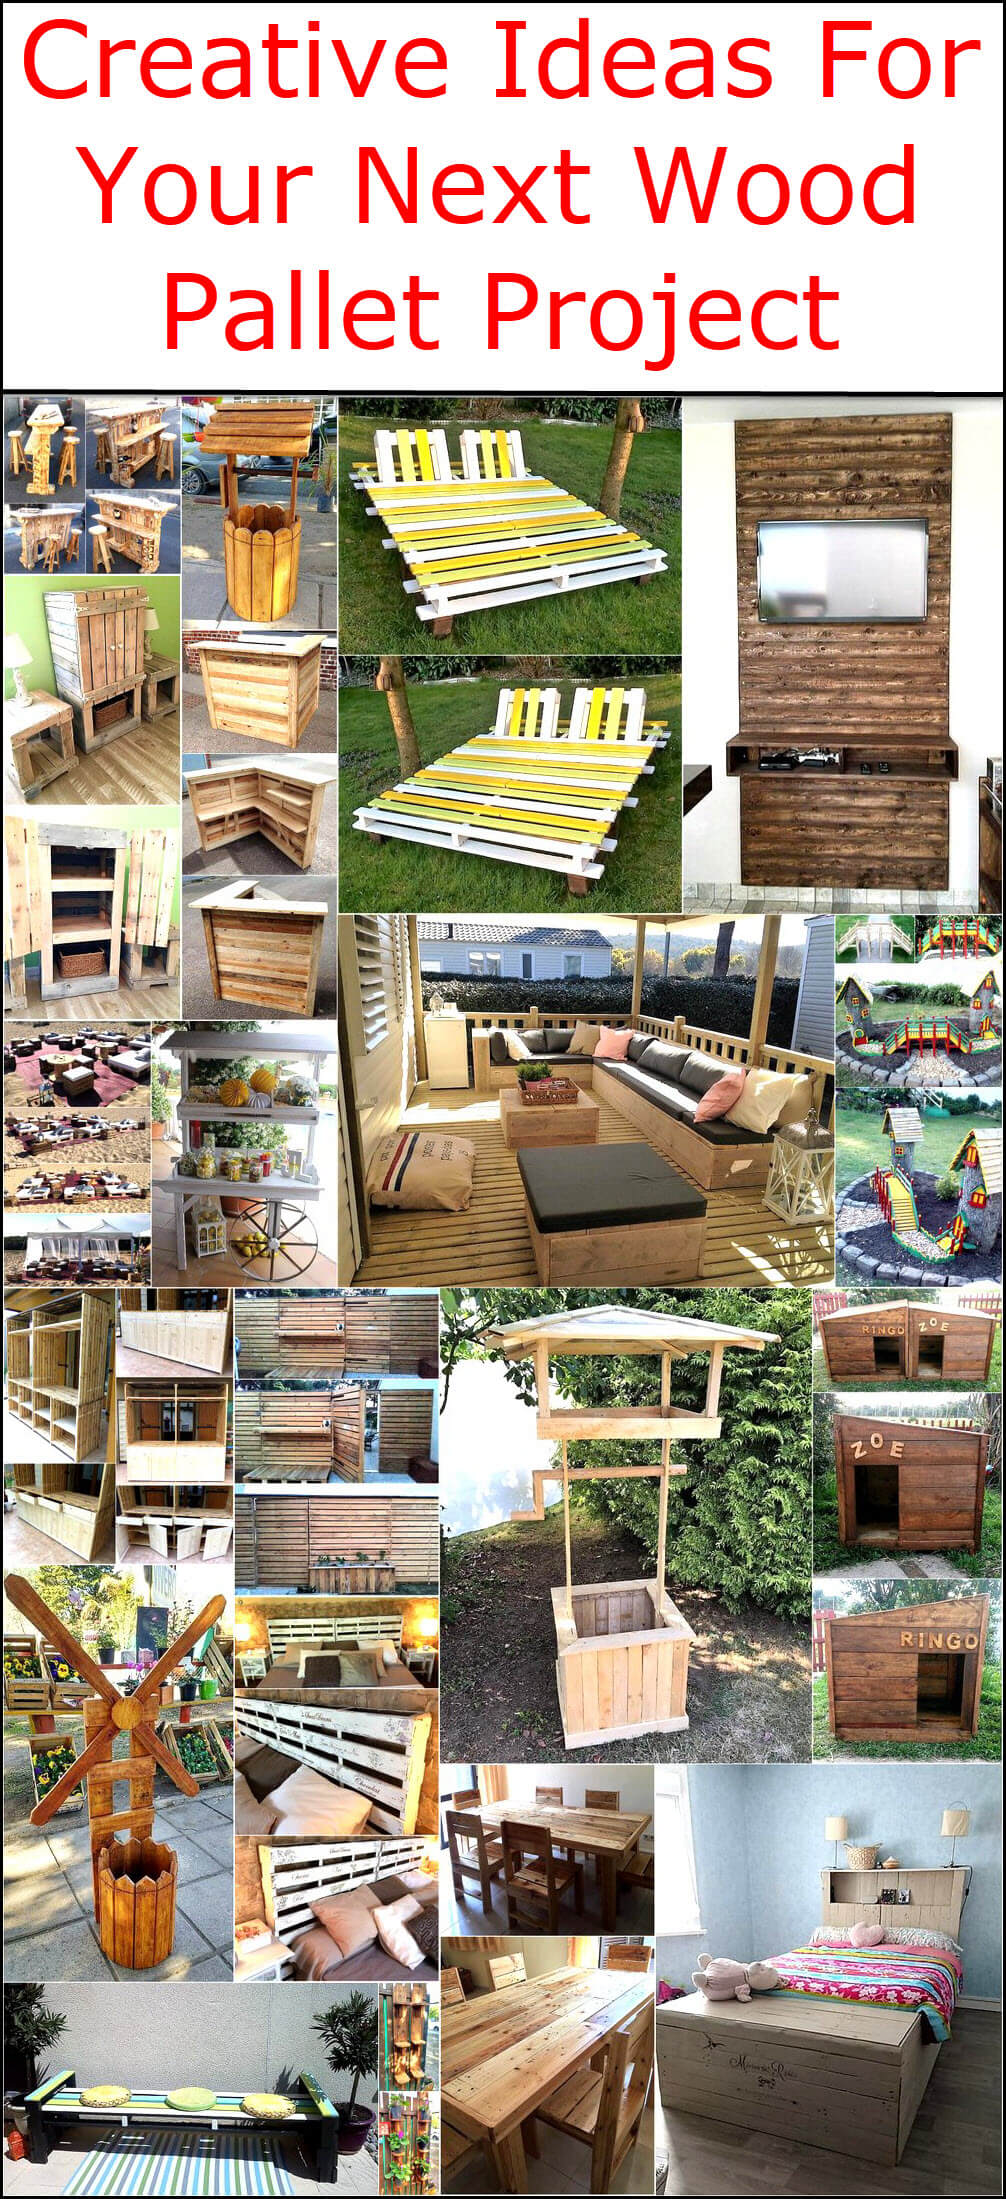 Creative Ideas For Your Next Wood Pallet Project